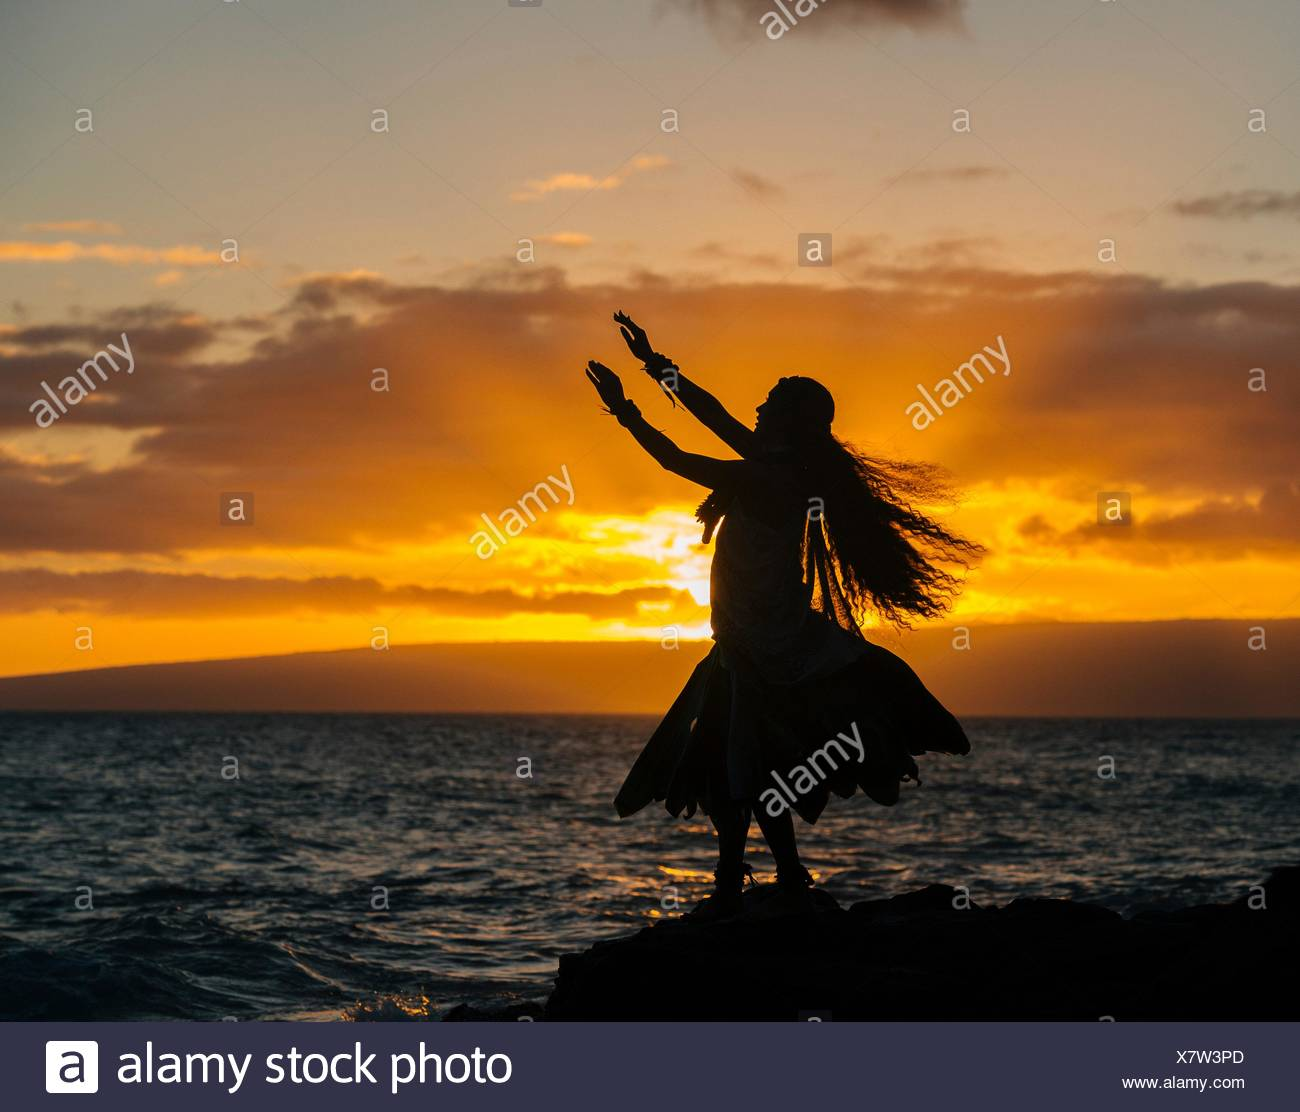 Silhouetted young woman in traditional costume, hula dancing on coastal rock at sunset, Maui, Hawaii, USA - Stock Image